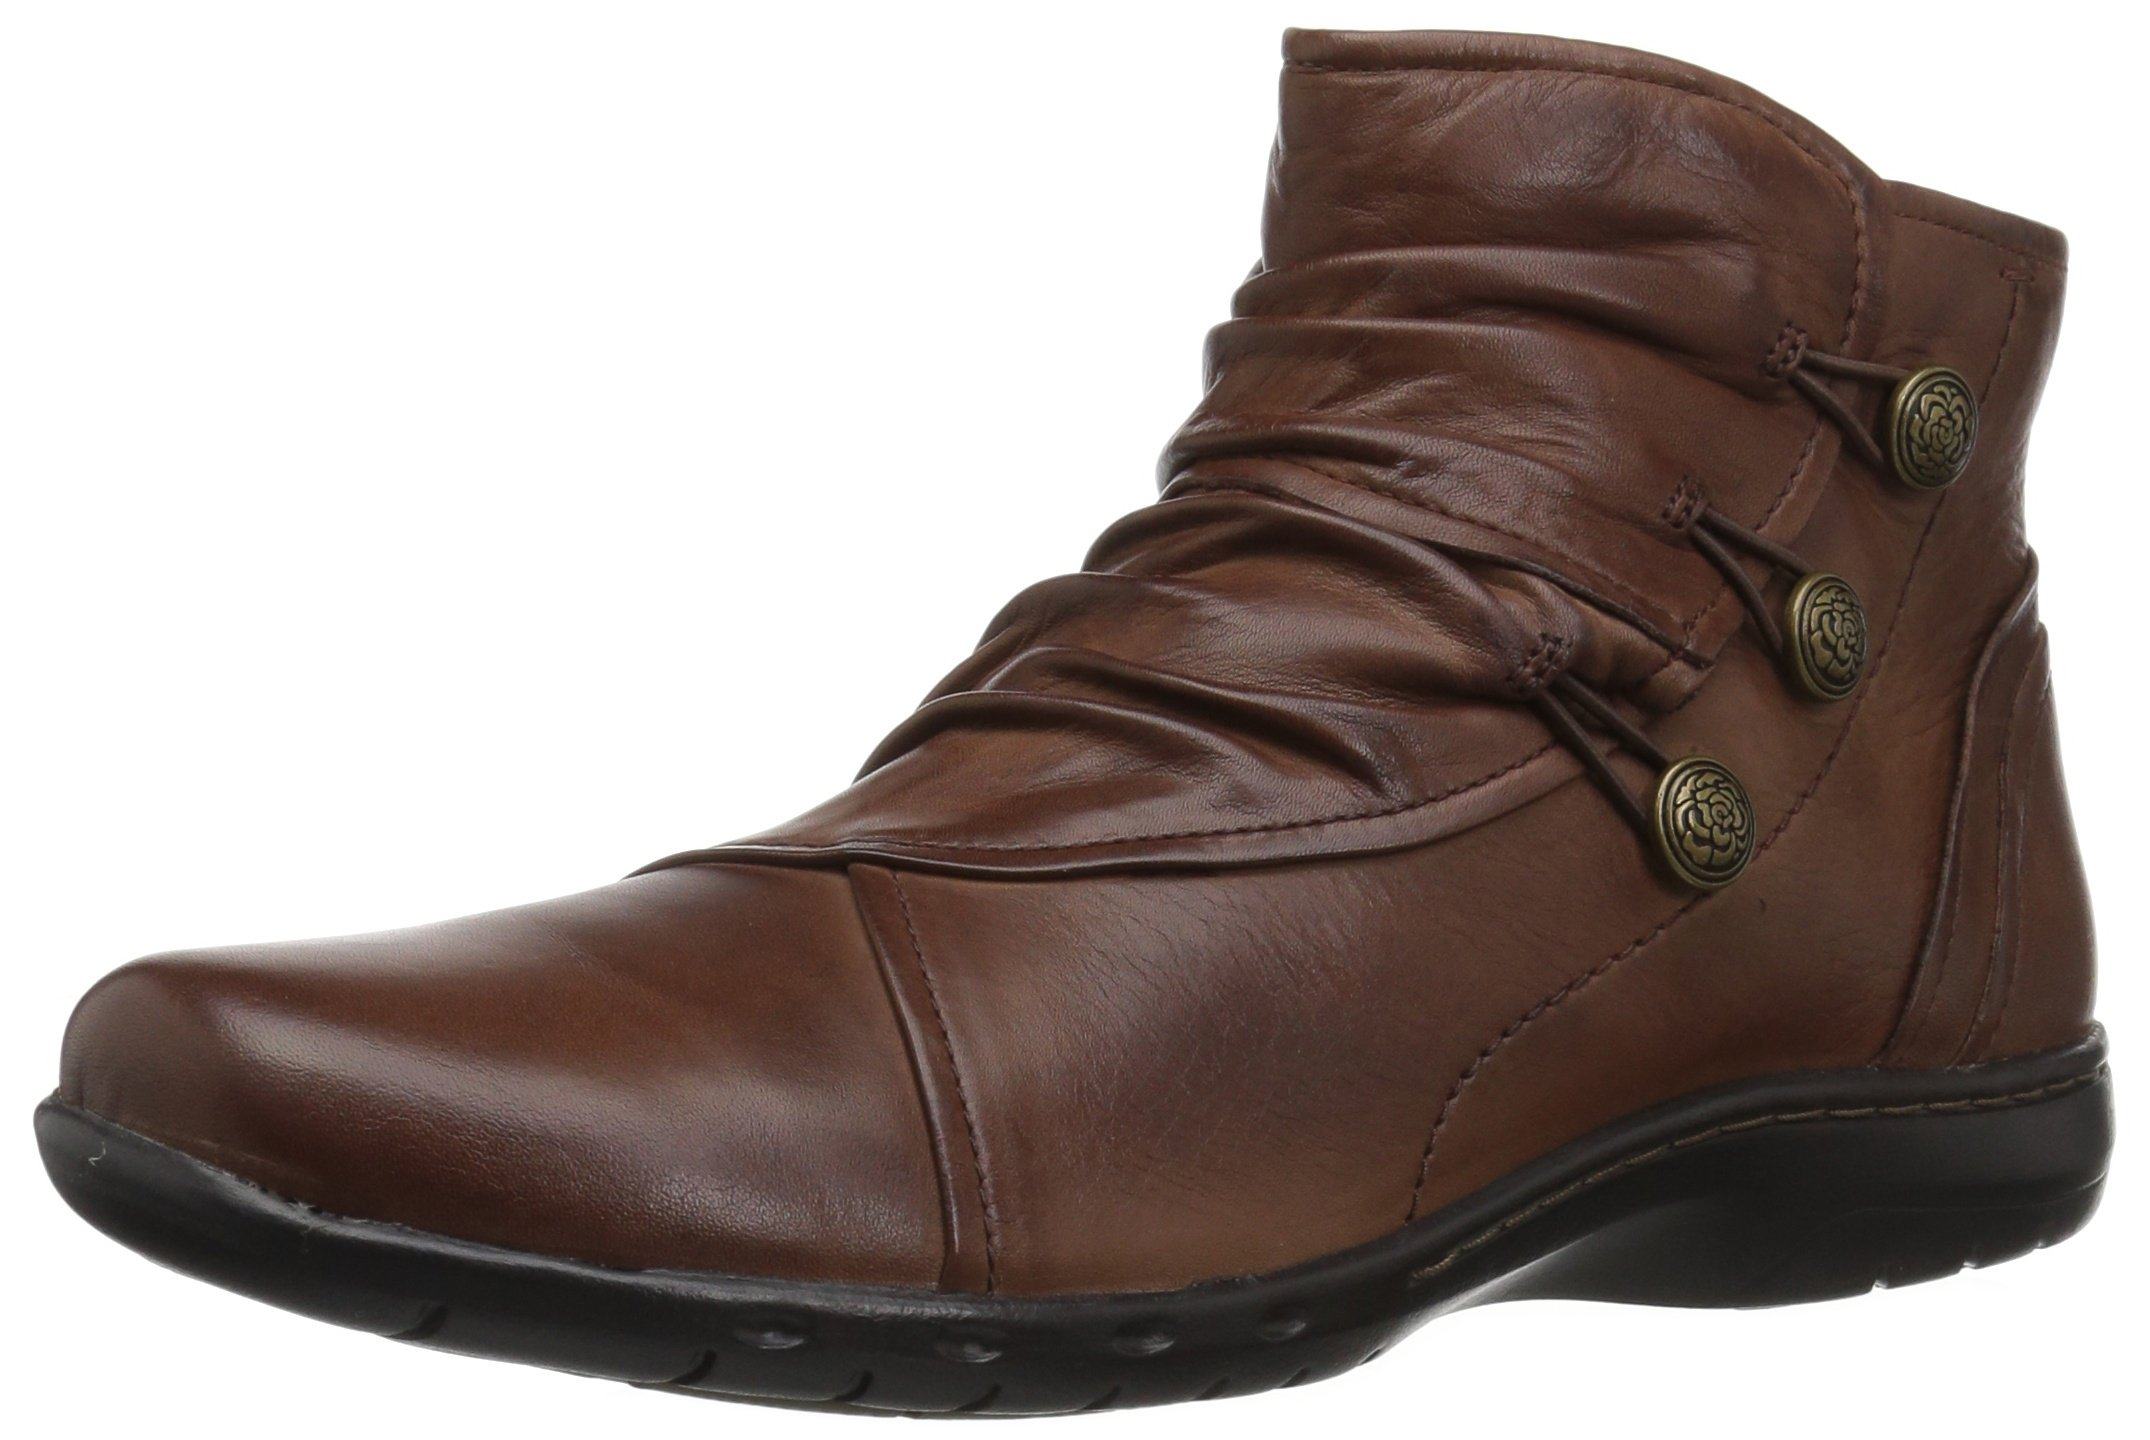 Rockport Cobb Hill Women's Cobb Hill Penfield Boot, Almond Leather, 6.5 W US